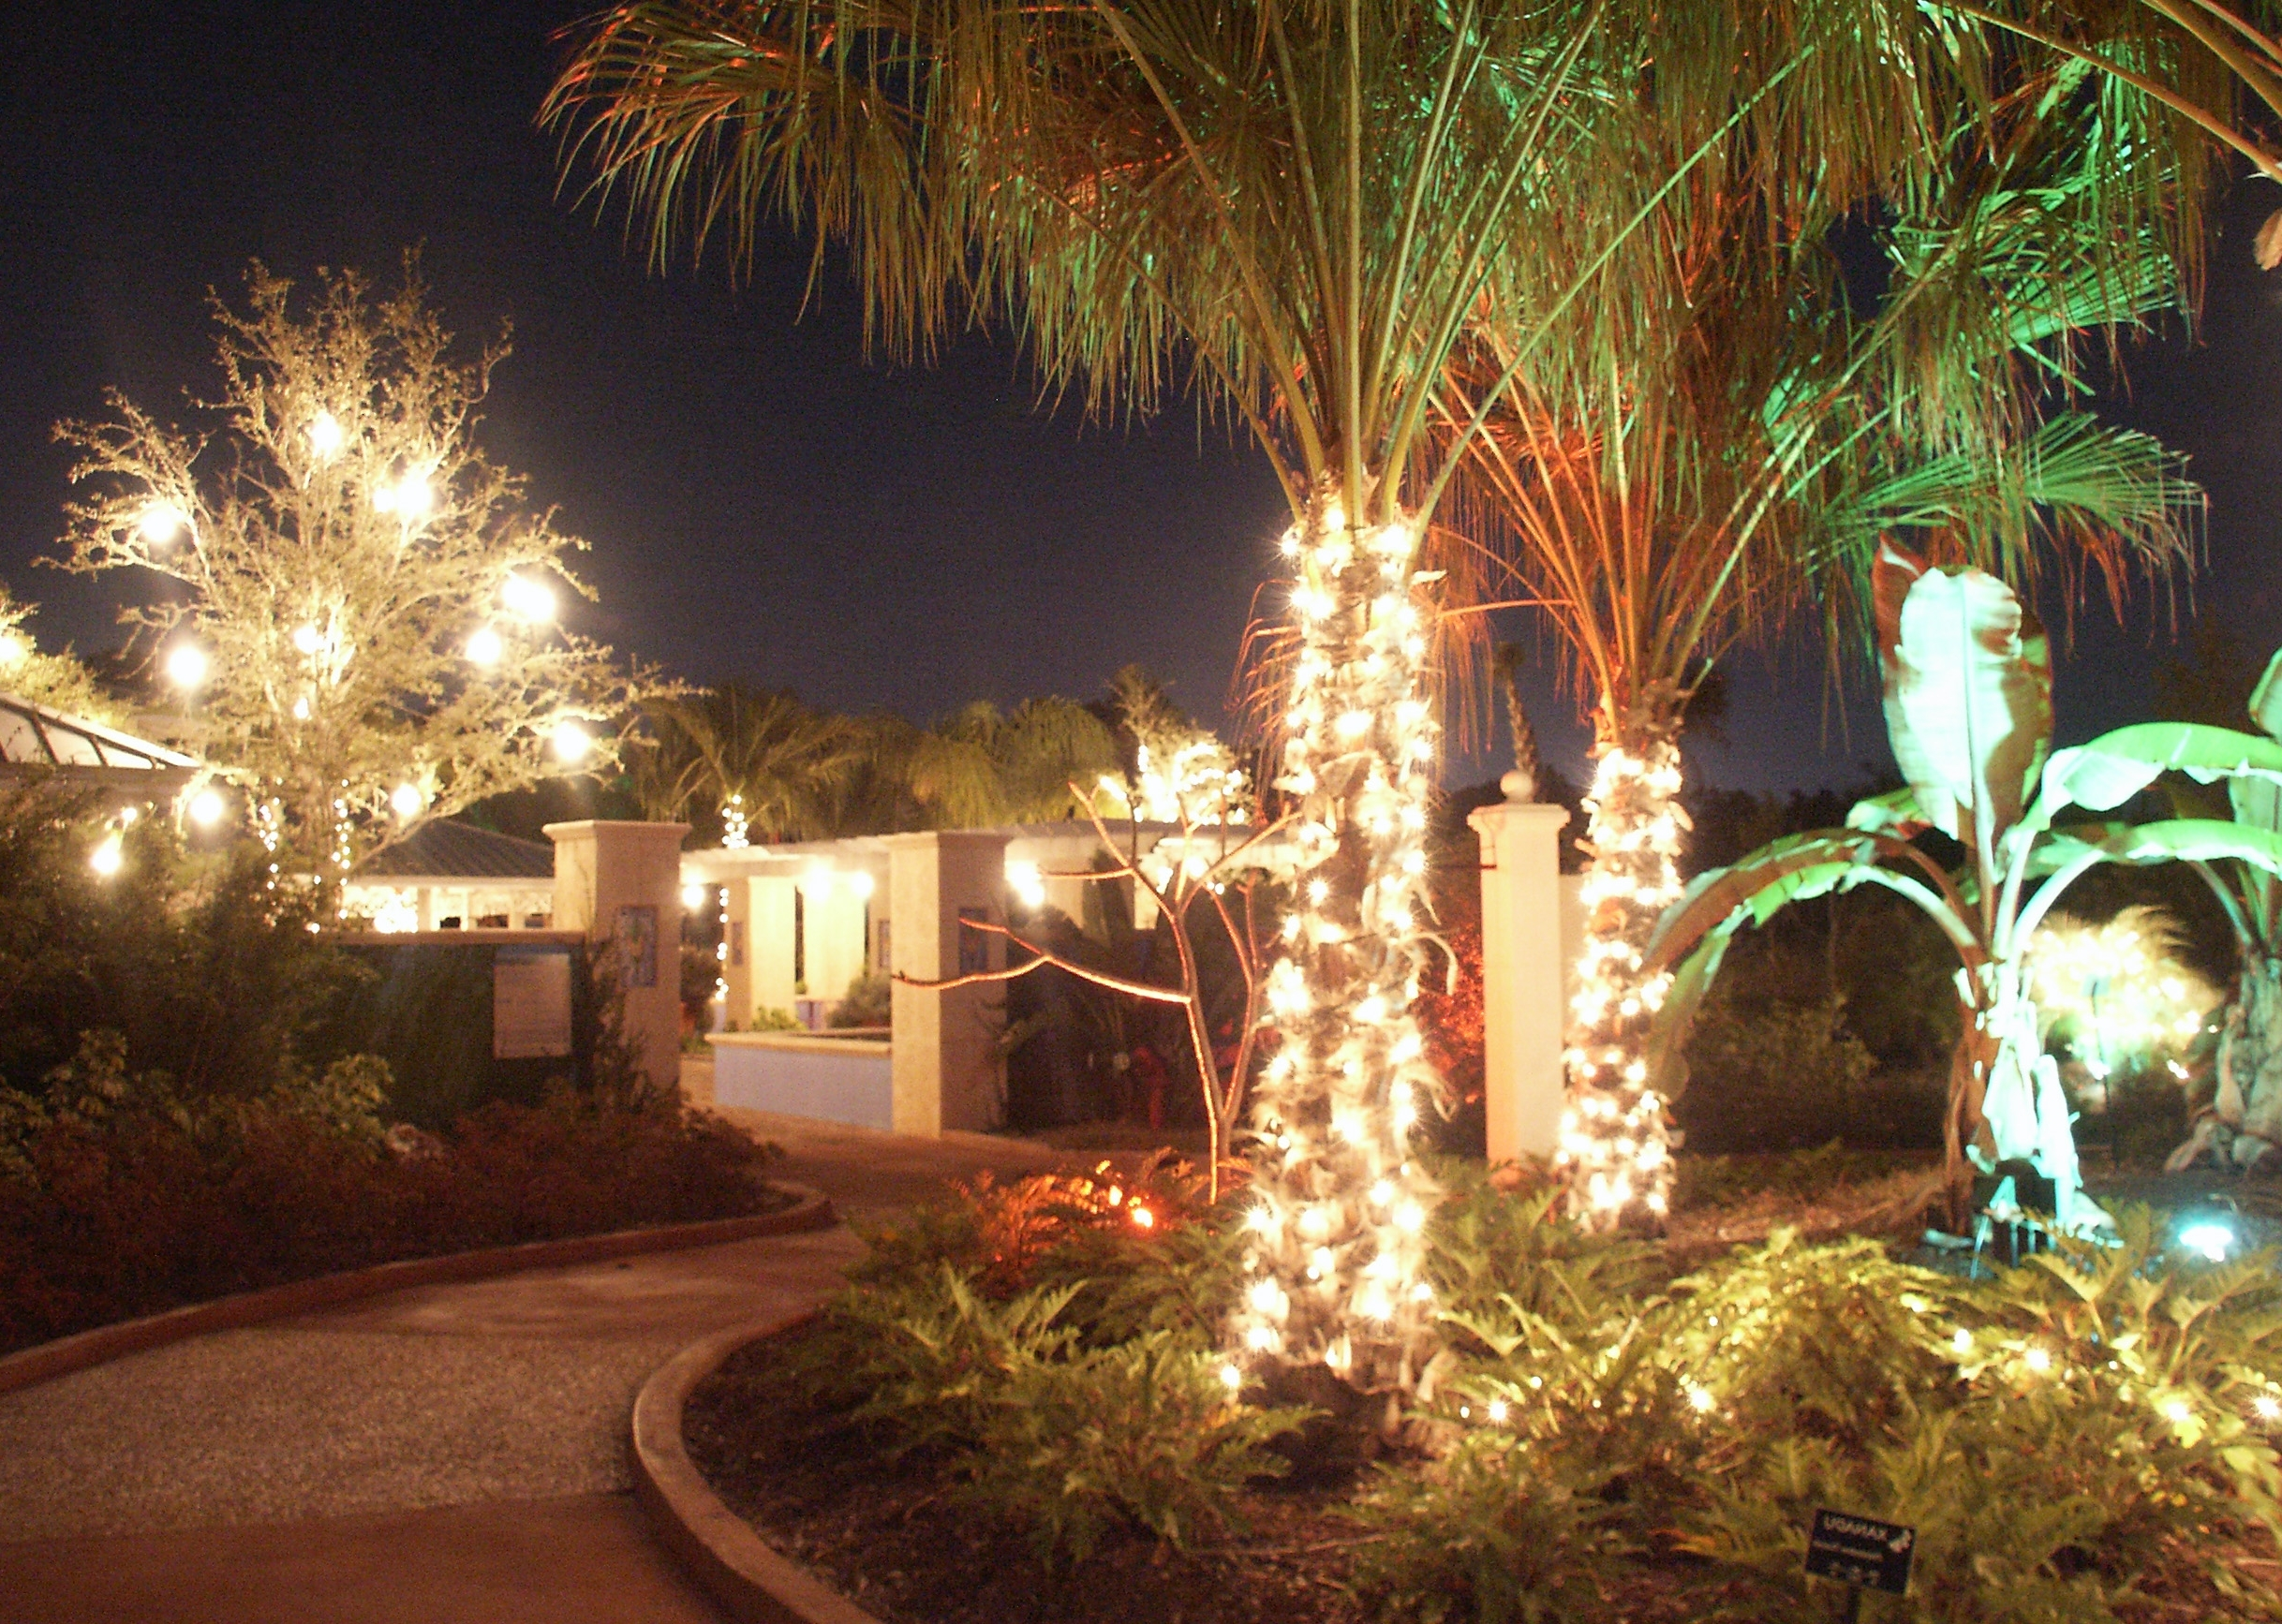 Amazing Hanging String Lights Outdoors At Outdoor Patio Lighting In Latest Hanging Lights On An Outdoor Tree (View 3 of 20)